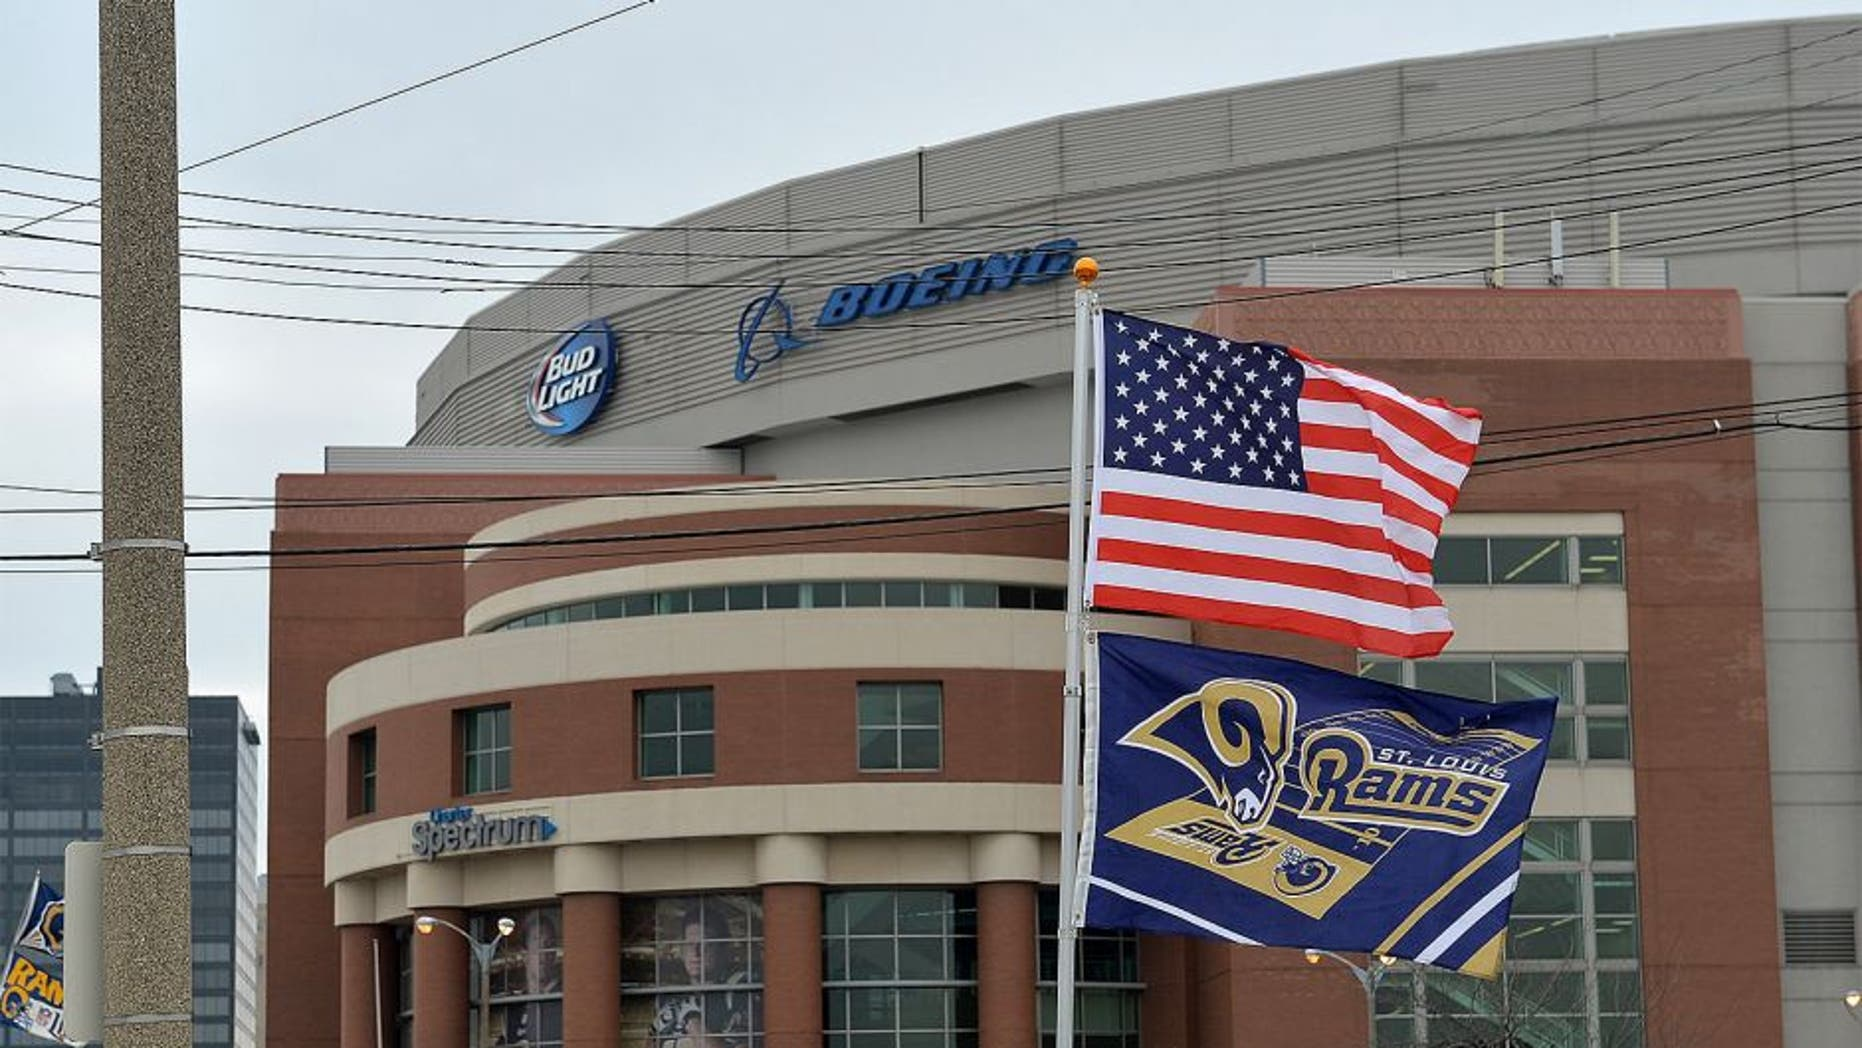 ST. LOUIS, MO - DECEMBER 21: An exterior view of the Edward Jones Dome prior to a game between the St. Louis Rams and the New York Giants at the Edward Jones Dome on December 21, 2014 in St. Louis, Missouri. (Photo by Michael Thomas/Getty Images)